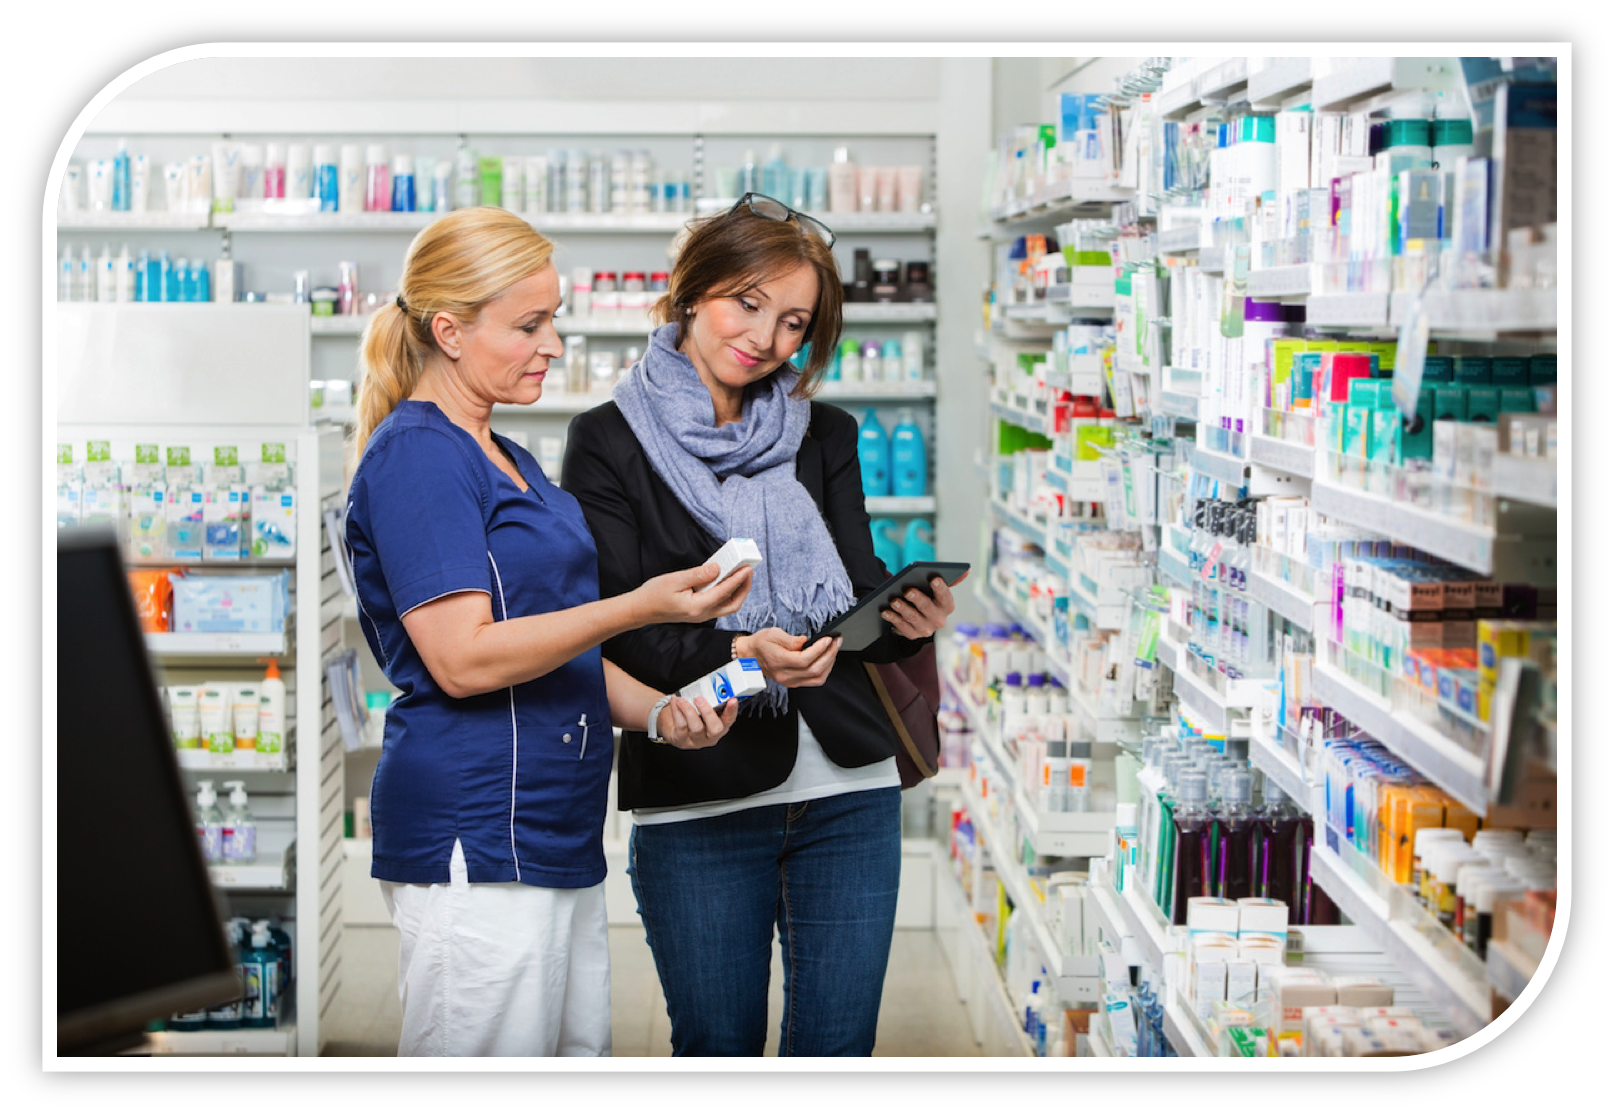 Medication Consulting and Prescription Transfer